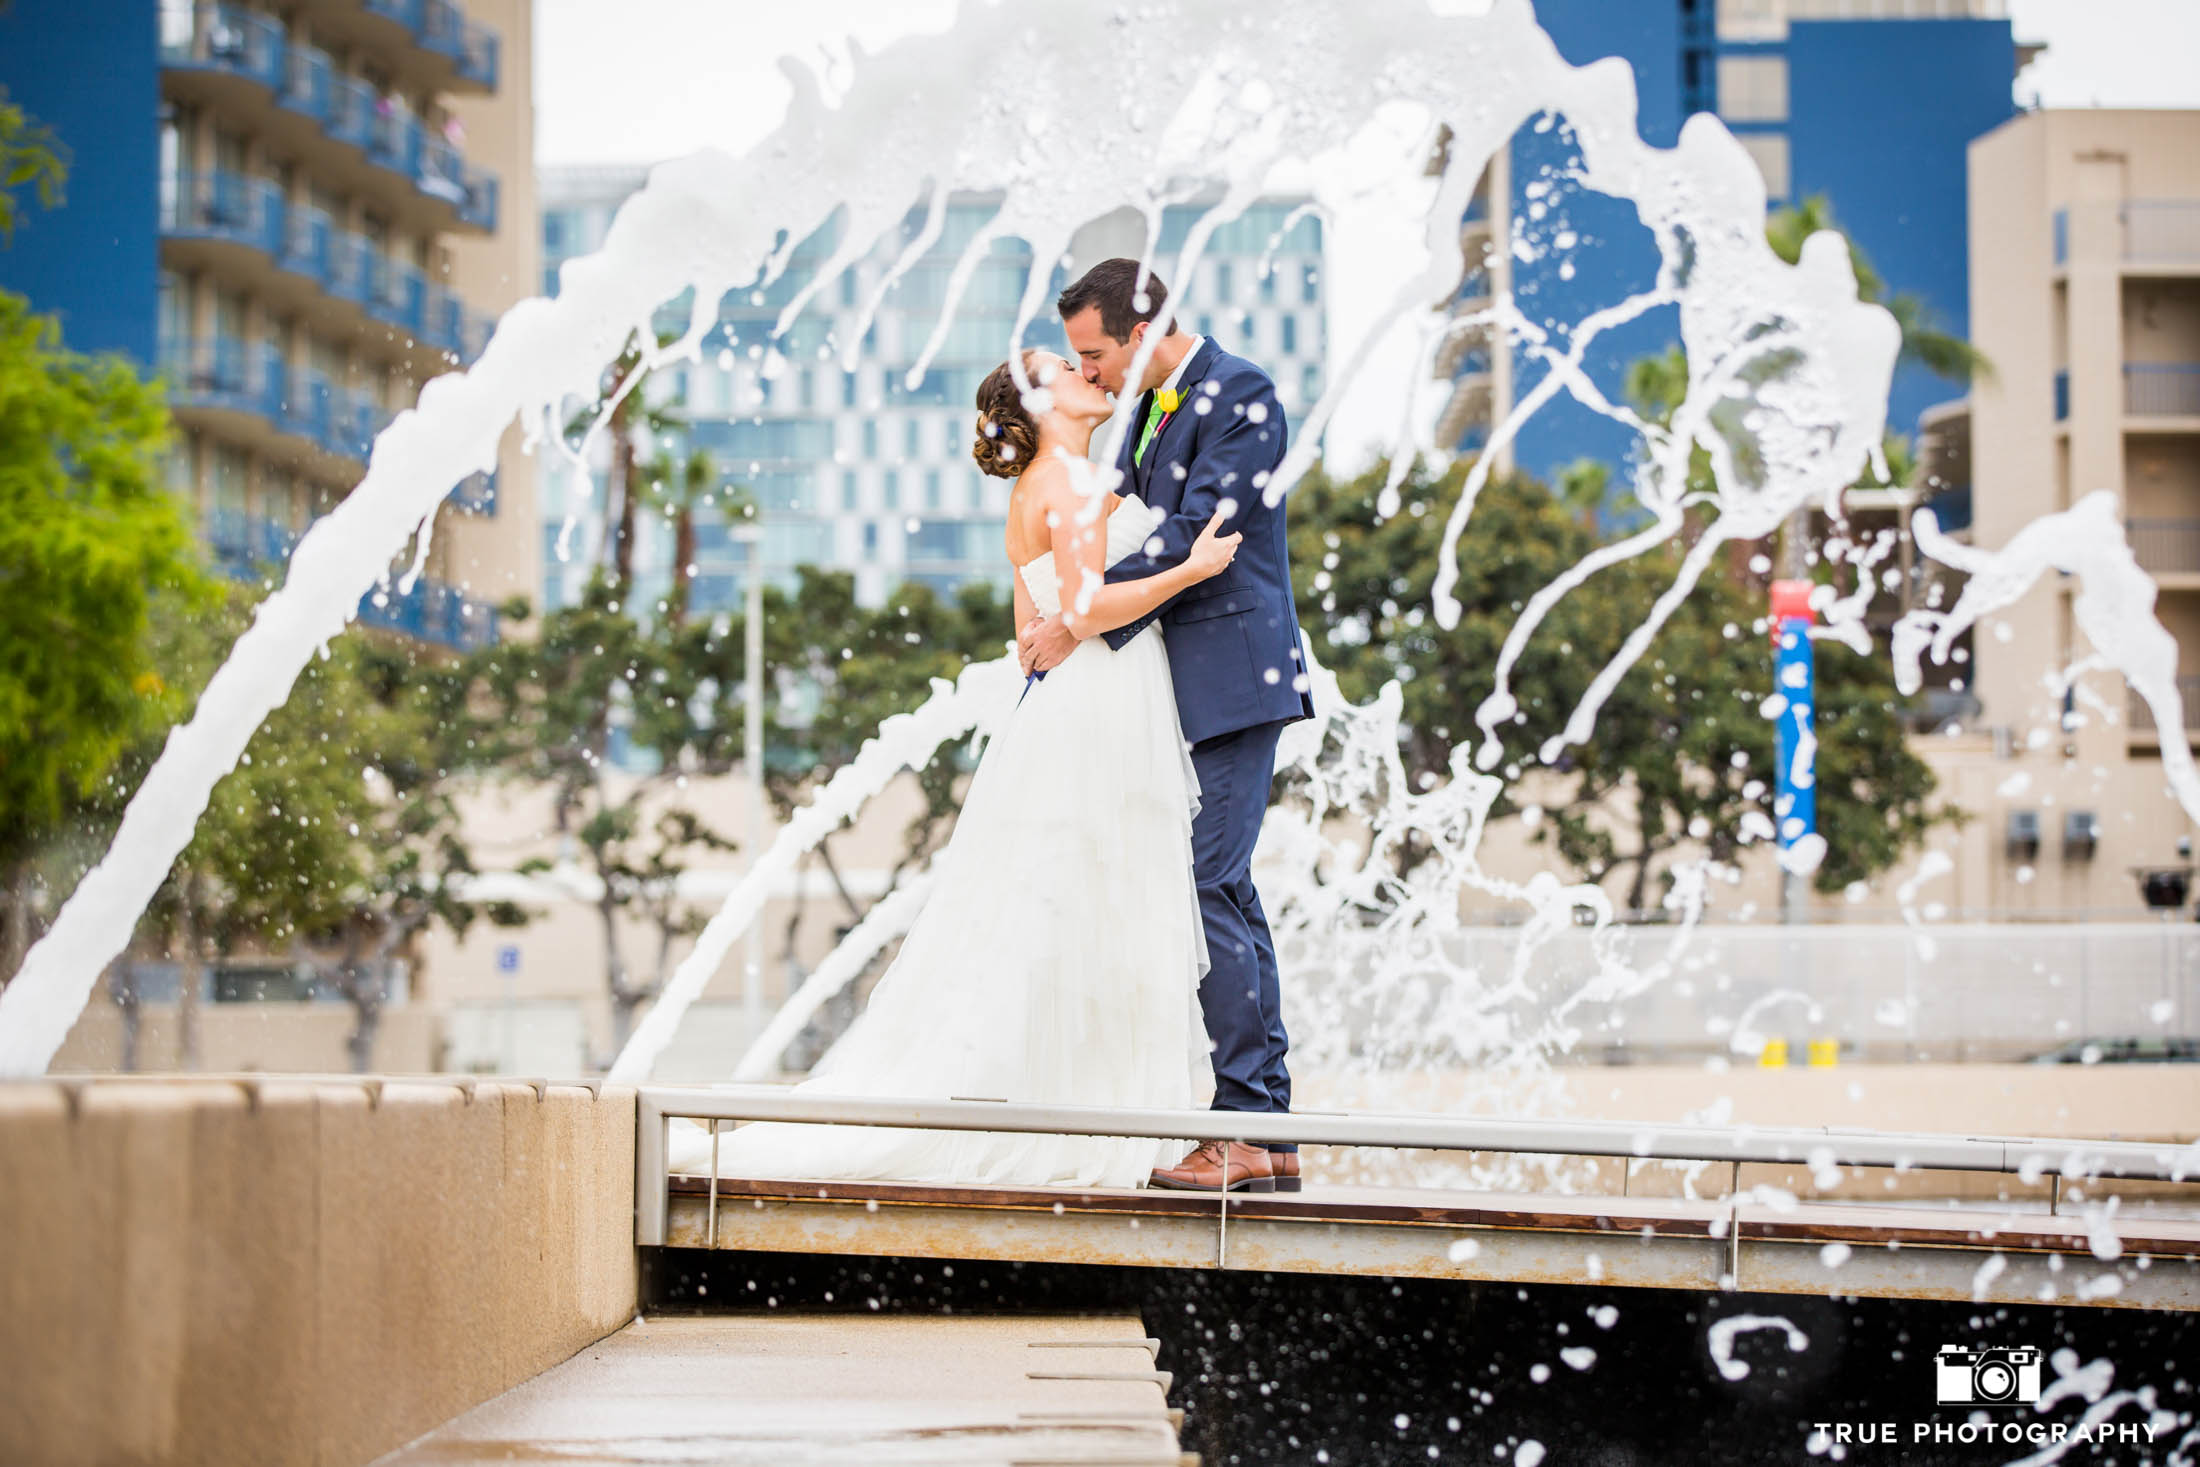 Spectacular wedding photo